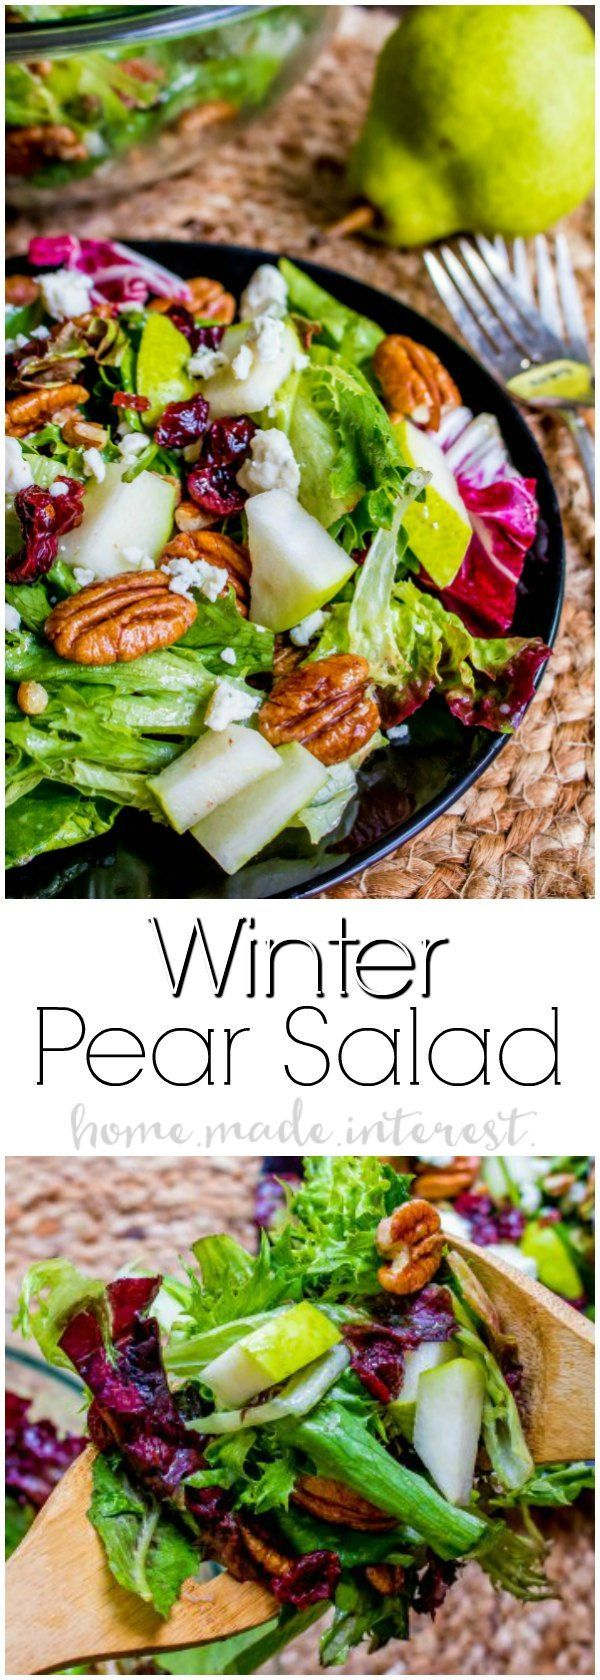 Winter Salad | This simple winter salad recipe is full of winter fruits and nuts like pears and cranberries, and pecans and is topped with a homemade vinagrette. This is the perfect side dish for holiday parties. Make this side dish for Thanksgiving or Christmas. Winter salad also makes a great healthy lunch or healthy dinner recipe when you want something like but full of flavor!